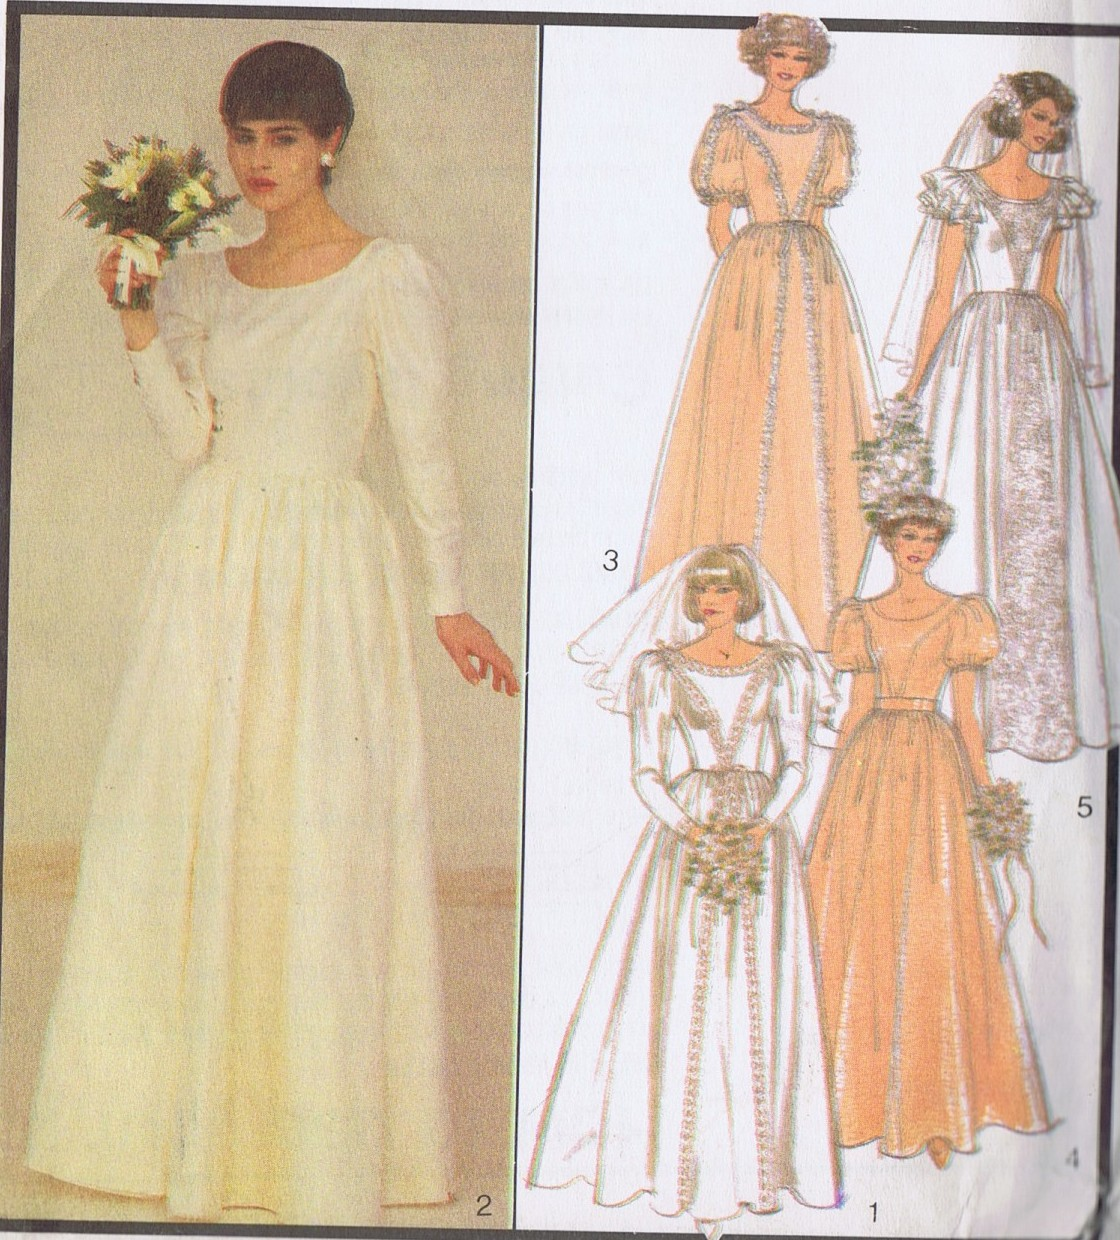 SEWING PATTERN Bridal Wedding Dress 4195 Style Size 10 Bust 32